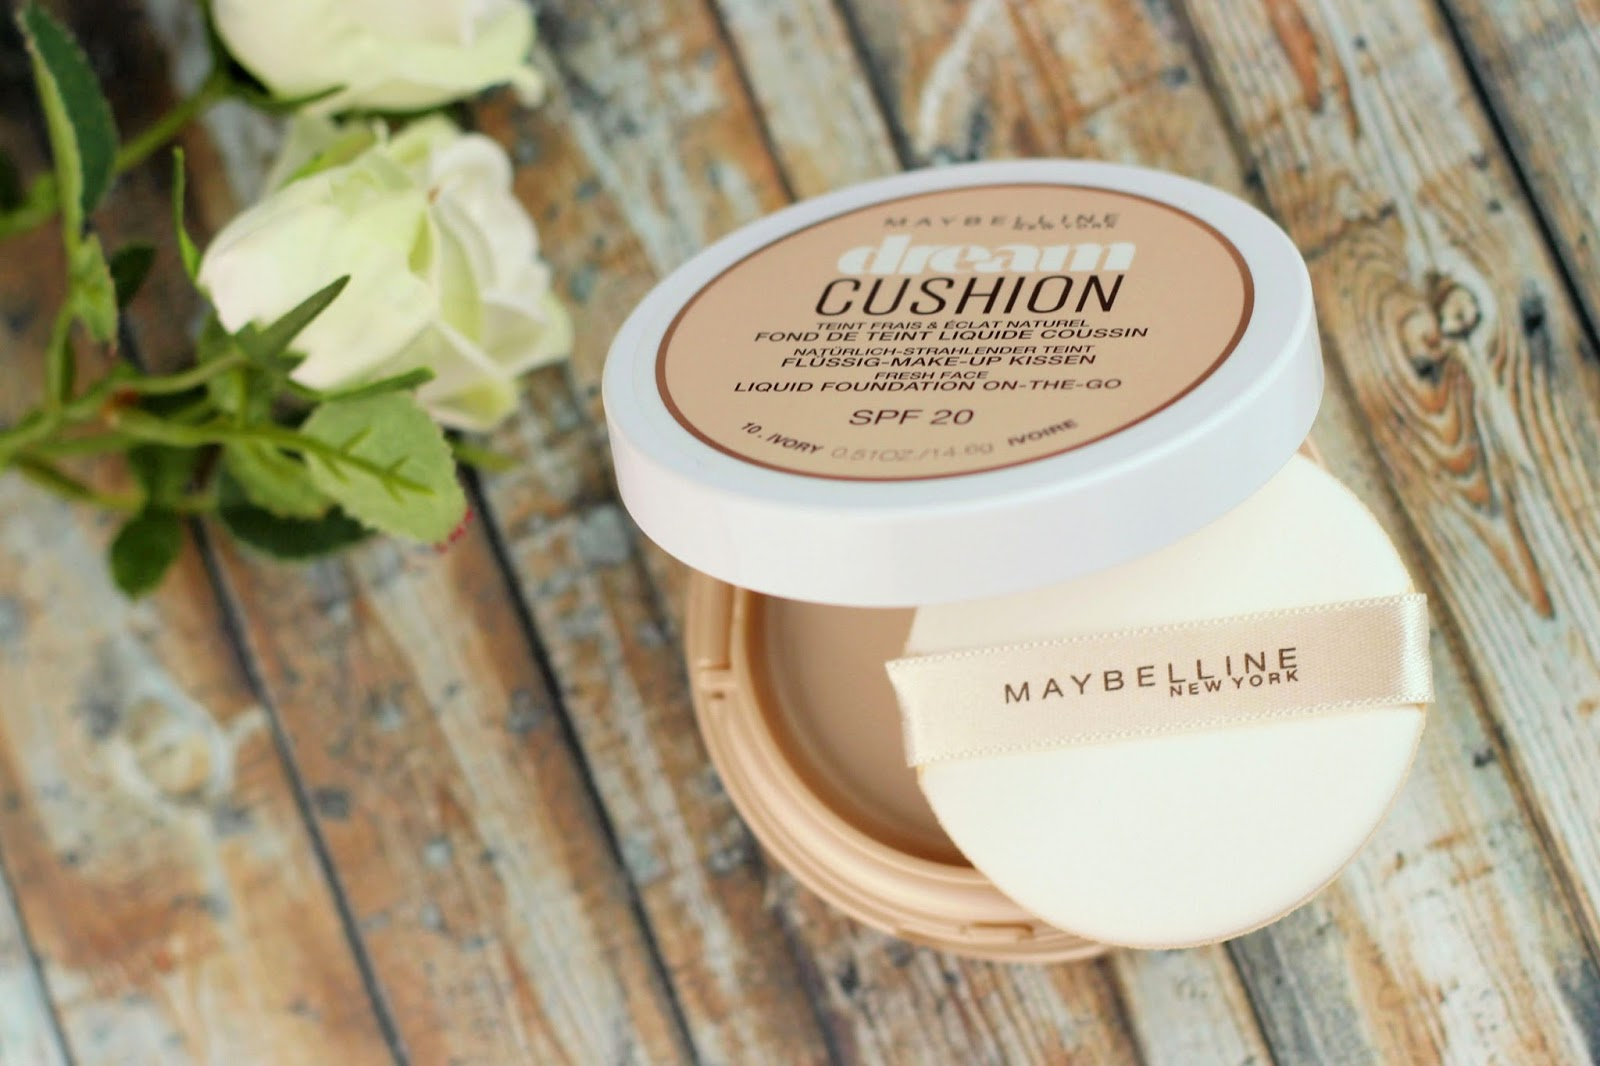 http://www.zaphiraw.de/2017/01/maybelline-dream-cushion-foundation.html